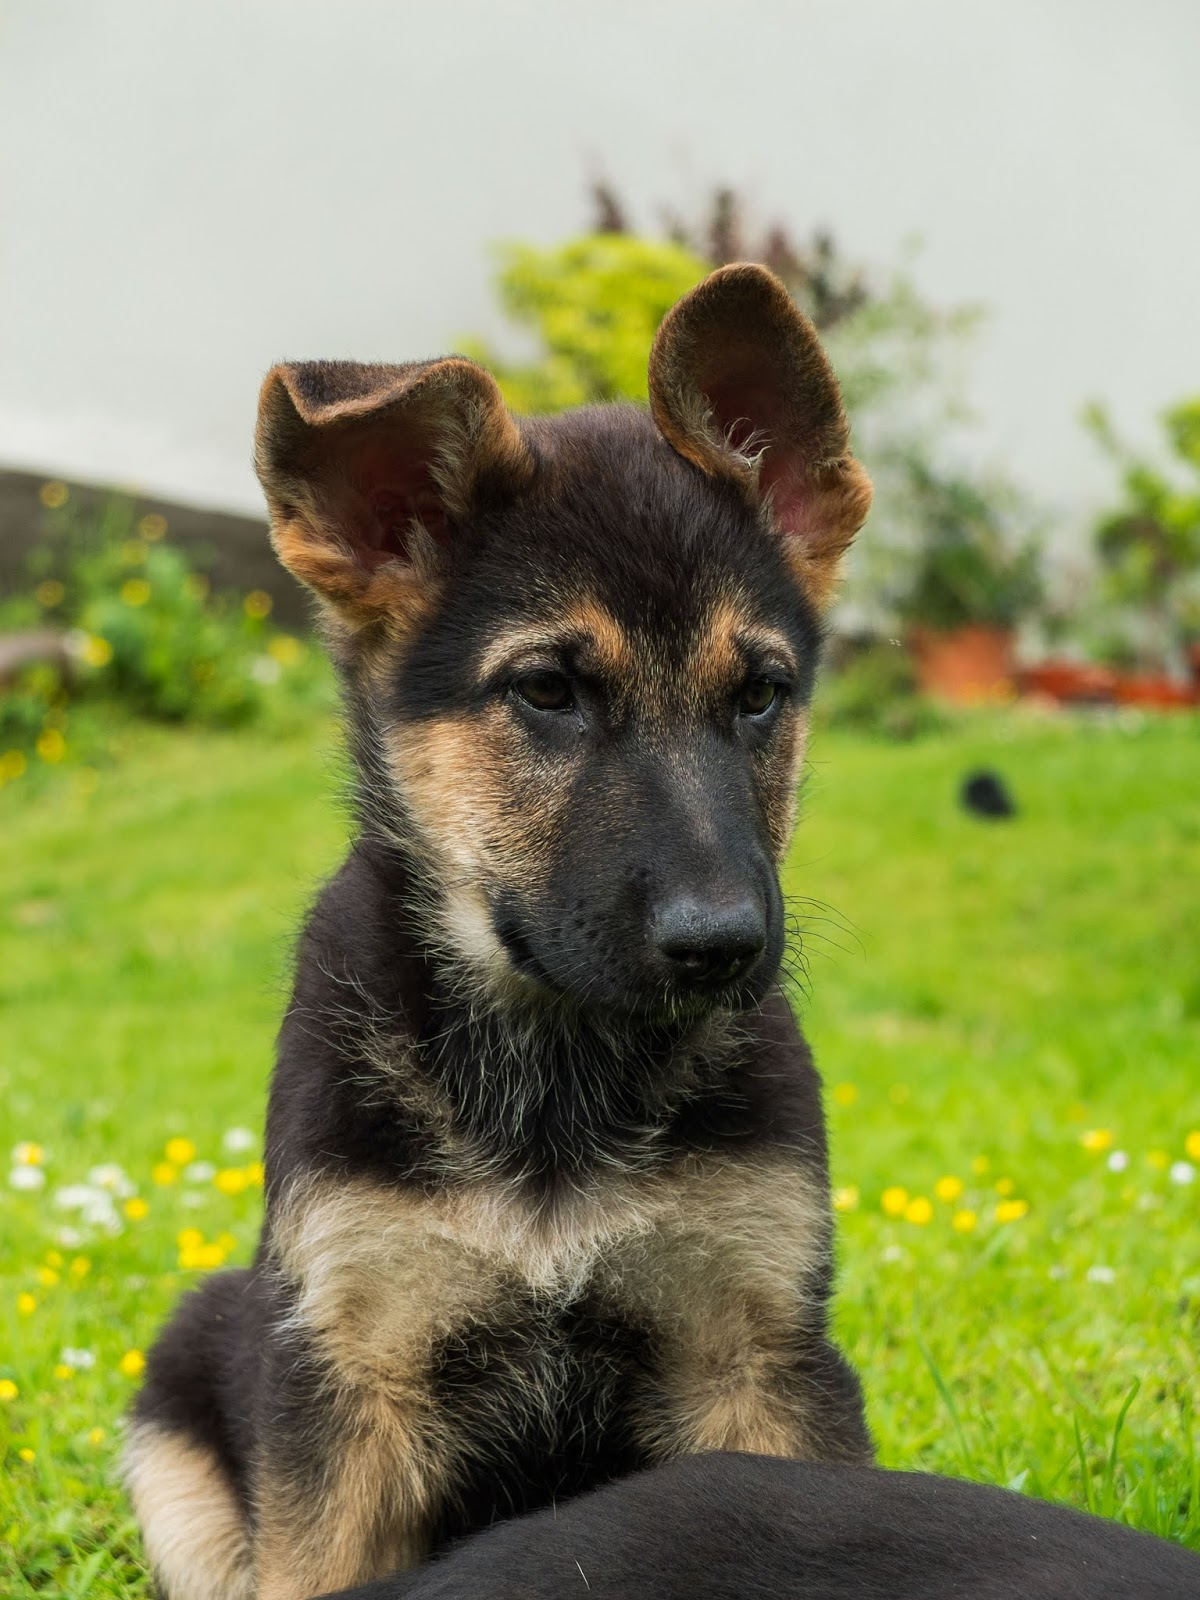 Two month old German Shepherd puppy sitting with one ear up looking alert.